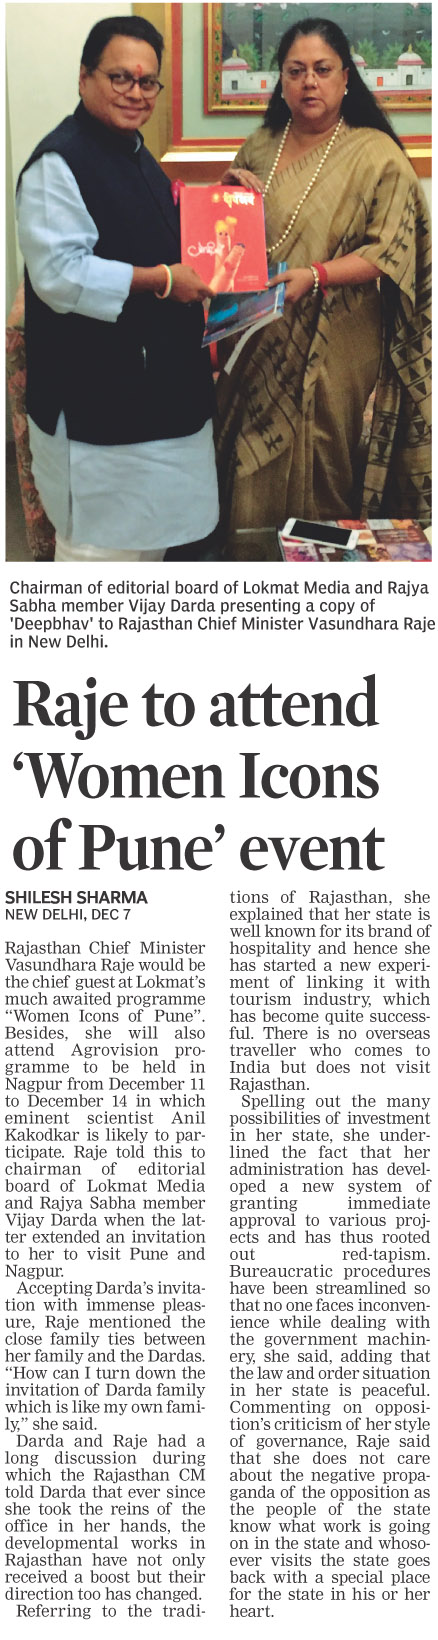 Raje to attend 'Women Icons of Pune' event